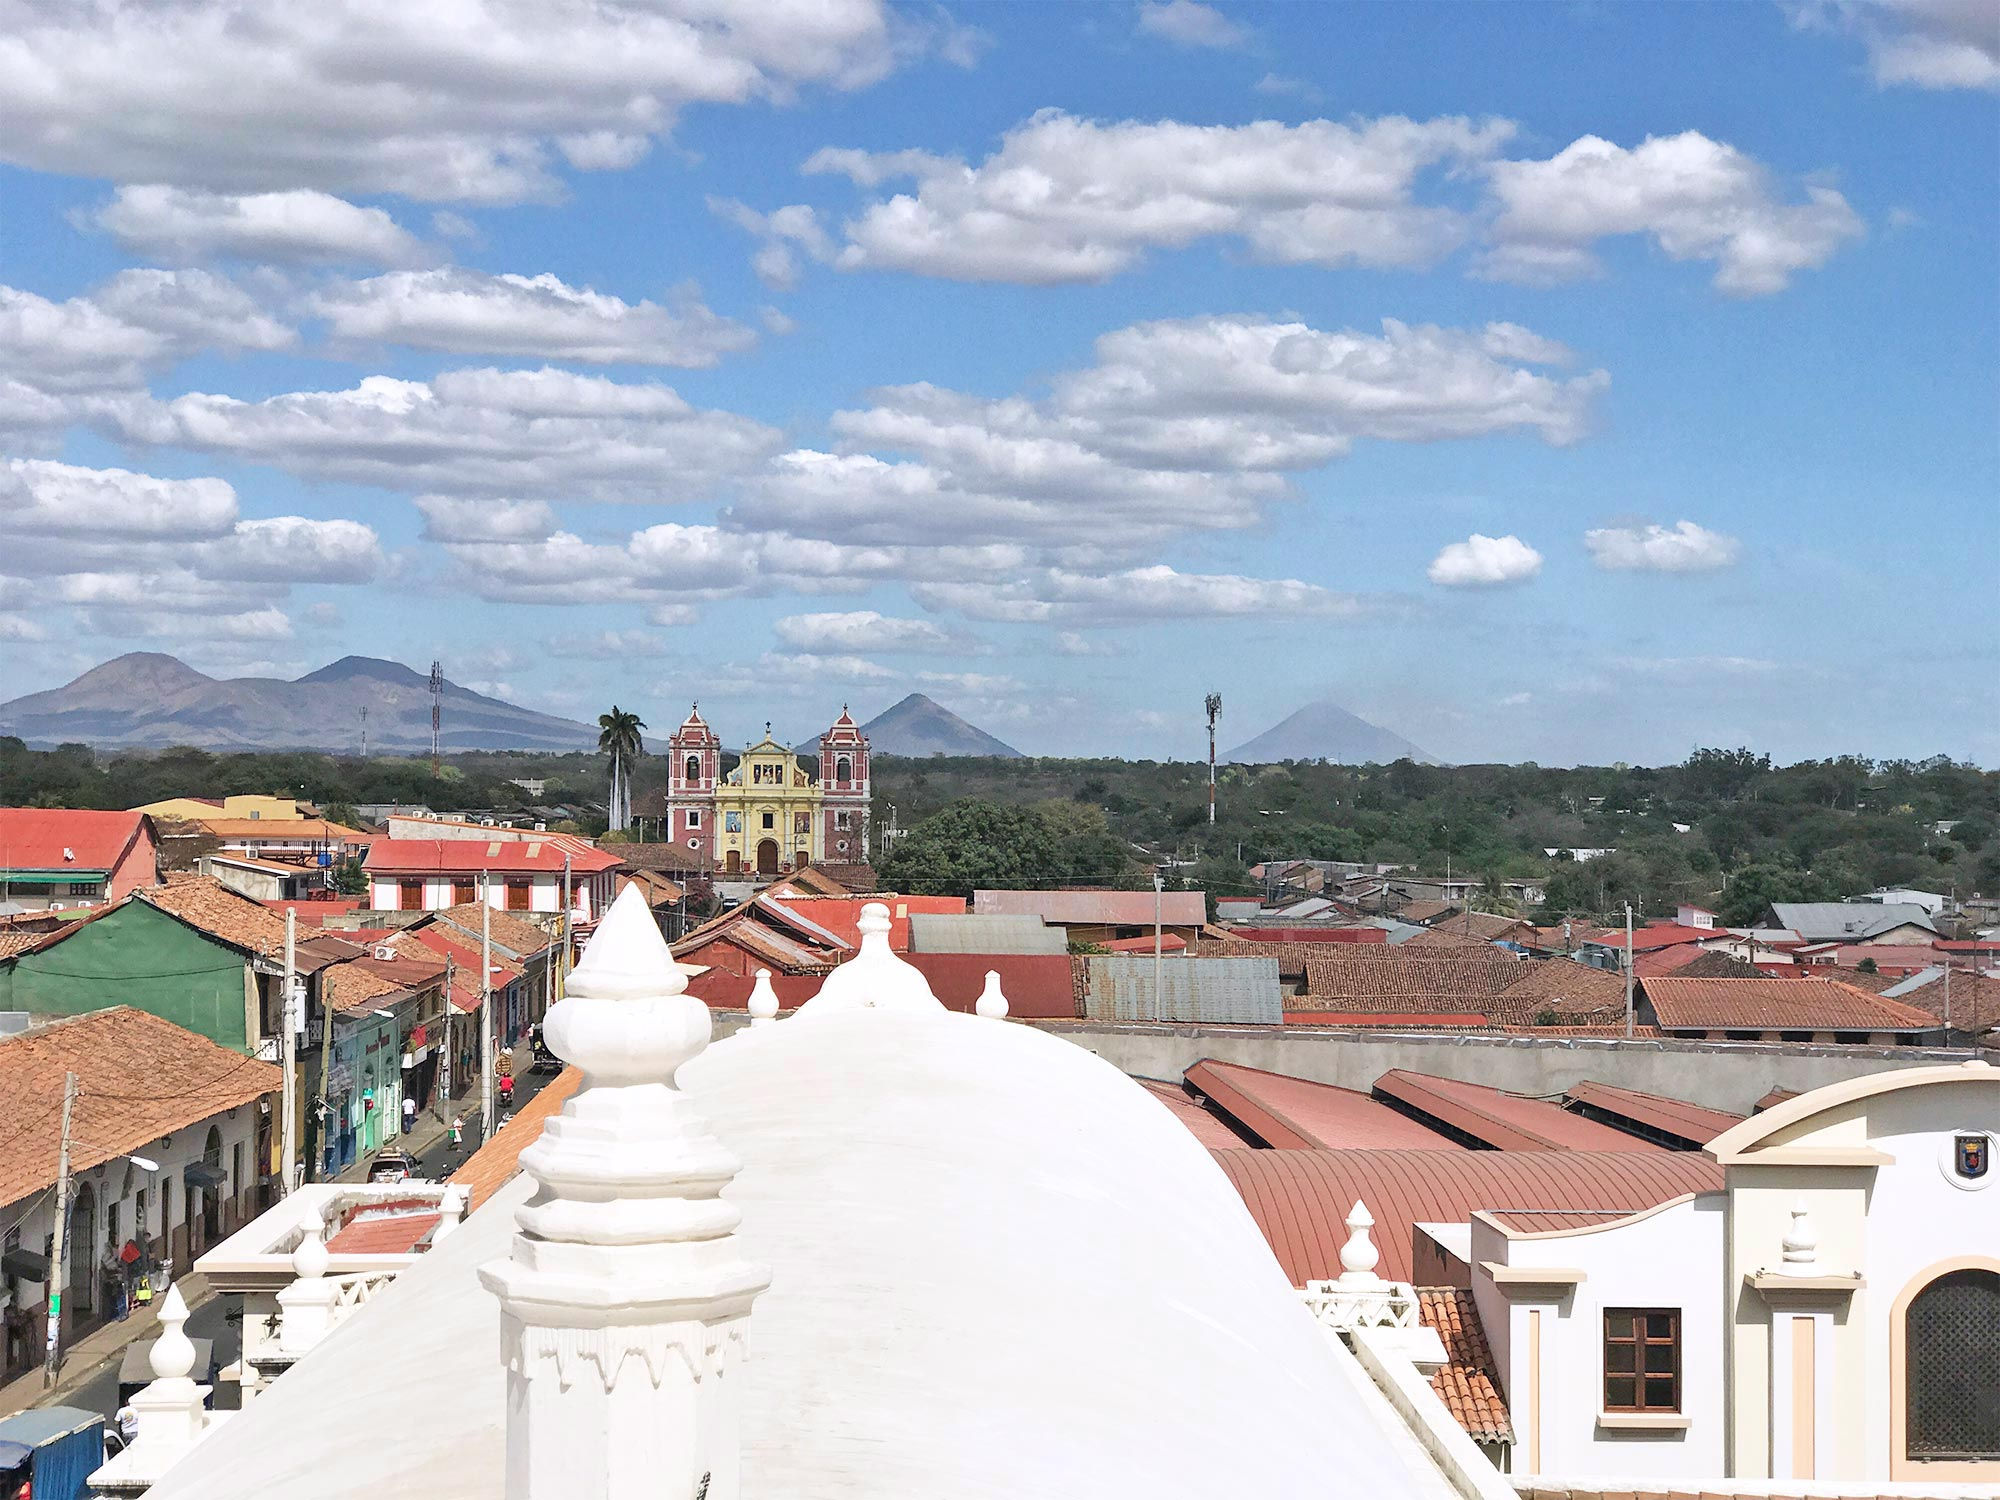 volcanoes and view of Leon on the Cathedral rooftop